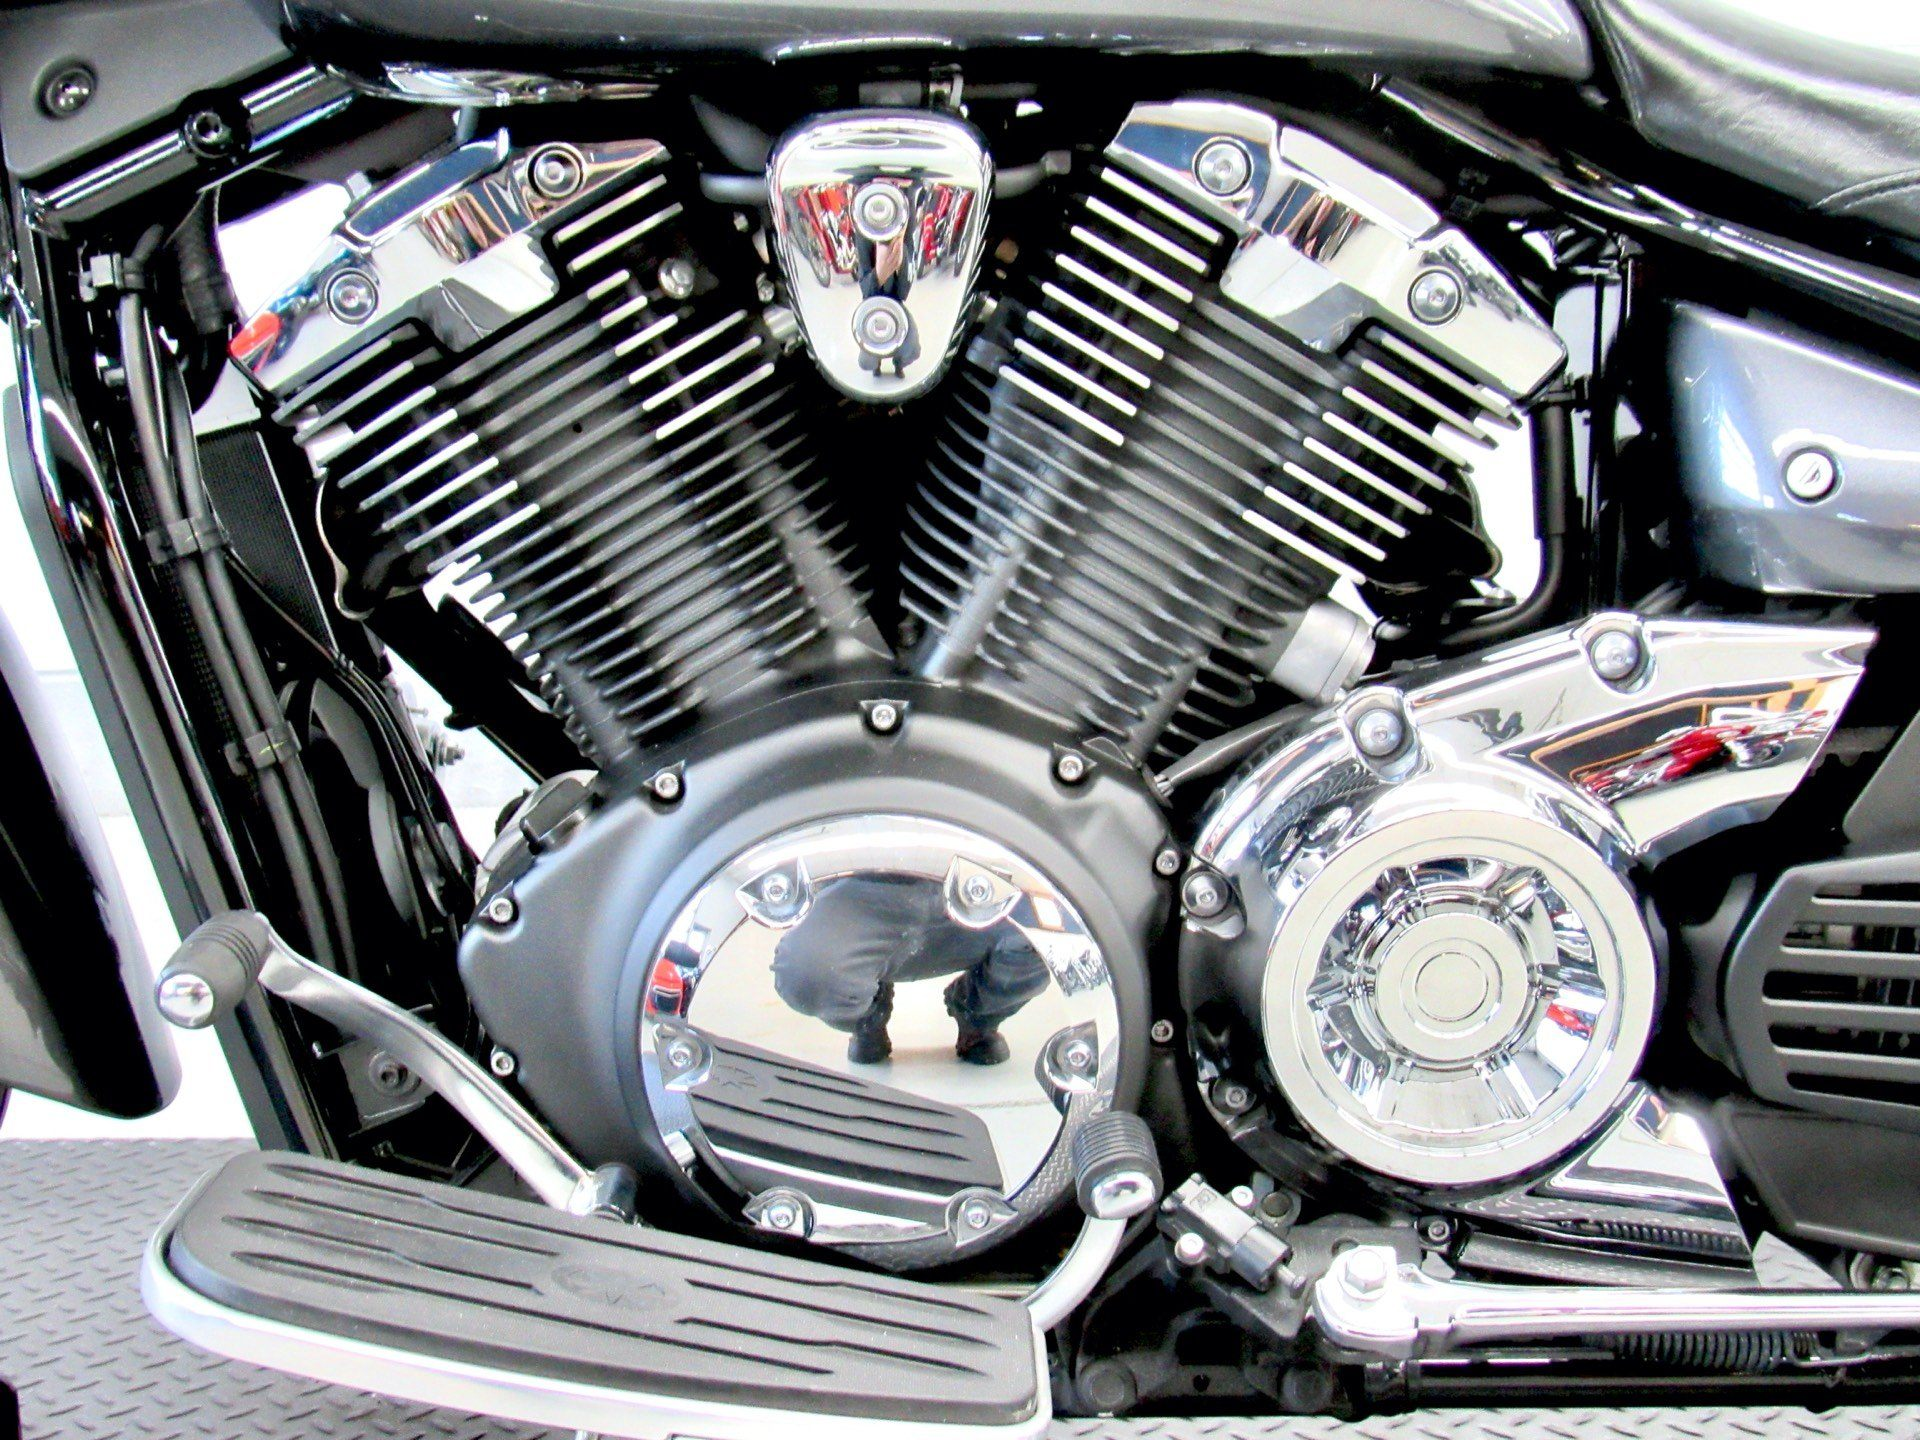 2014 Yamaha V Star 1300 Deluxe in Fredericksburg, Virginia - Photo 19